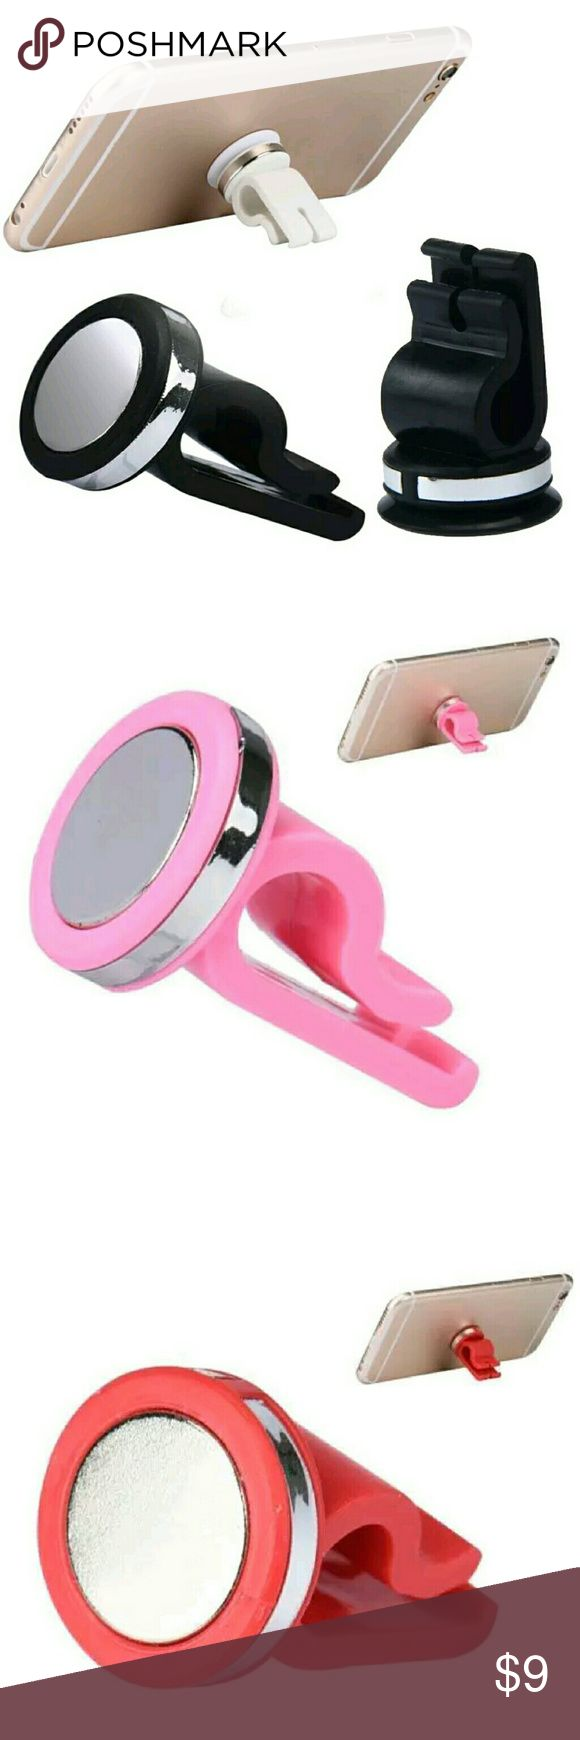 Magnetic Air Vent Cell Phone Holder 100% Brand new High quality. Type: Phone Holder Material: Alloy, Plastic Compatible Brand: Universal Compatible Models: Universal Features:  Strong Magnetic, Convenient and Durable Compatible for iPhone, for iPad, for iPod, for GPS, for HTC, for Samsung etc. This universal sticky magnetic car mount holder, is perfect for holding your digital product onto car dashboard. Prevents devices from scratches and falls. Super compact size.Super strong magnetic…